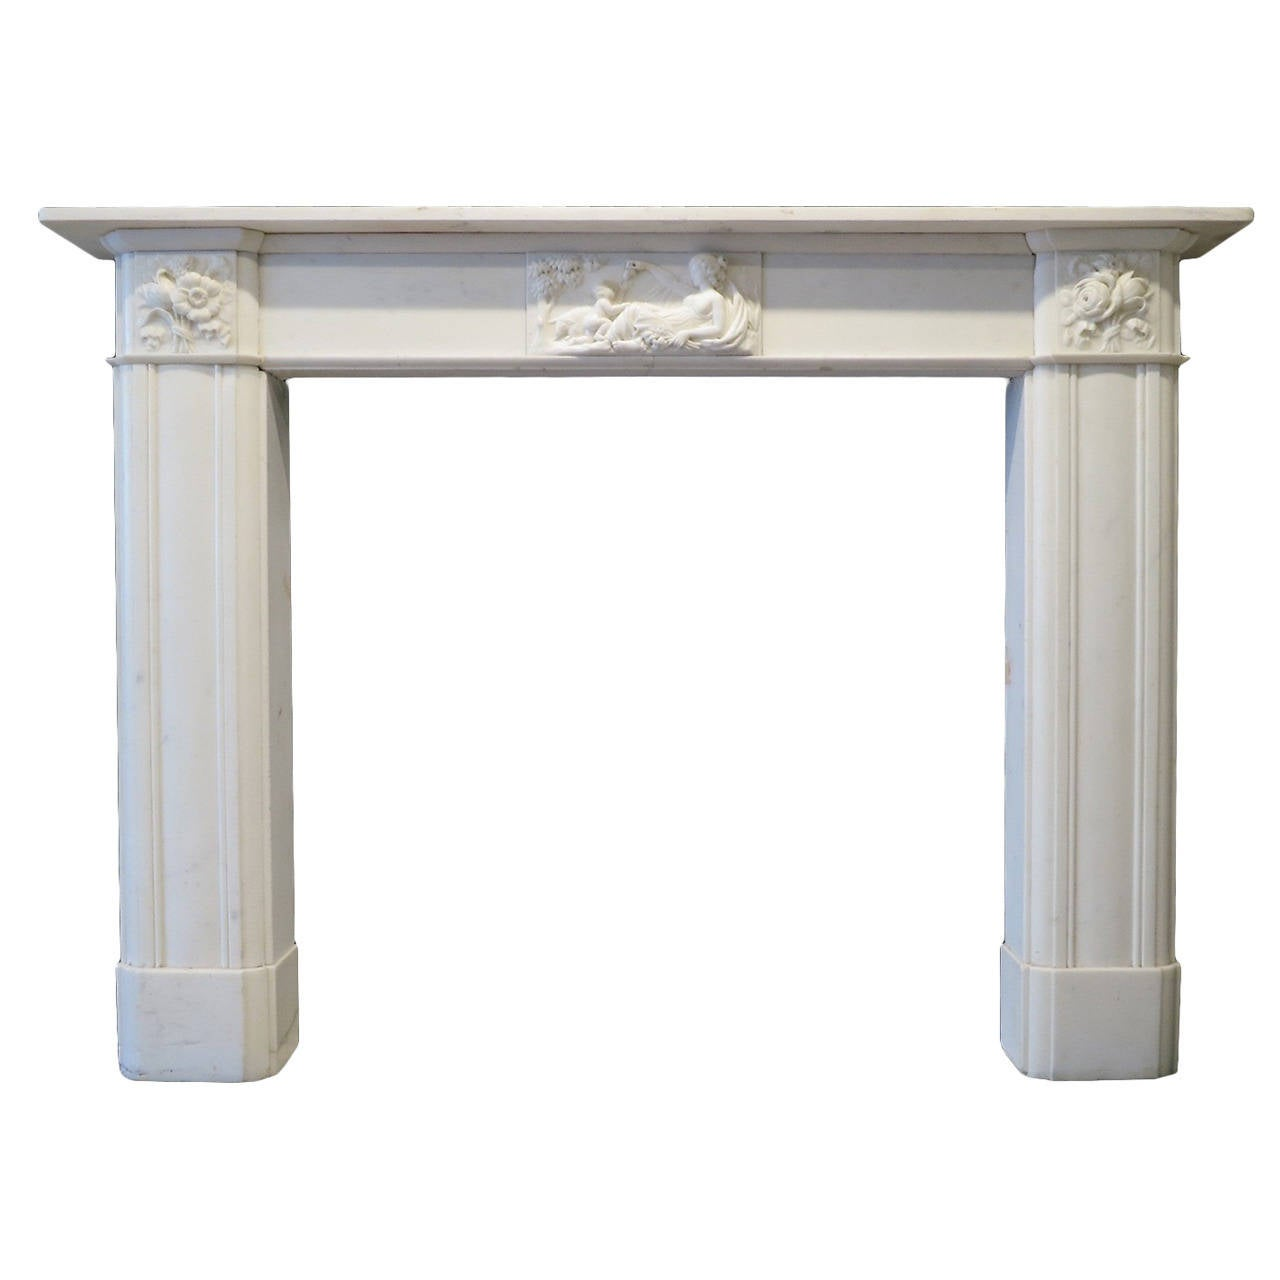 antique regency marble fireplace mantel at 1stdibs